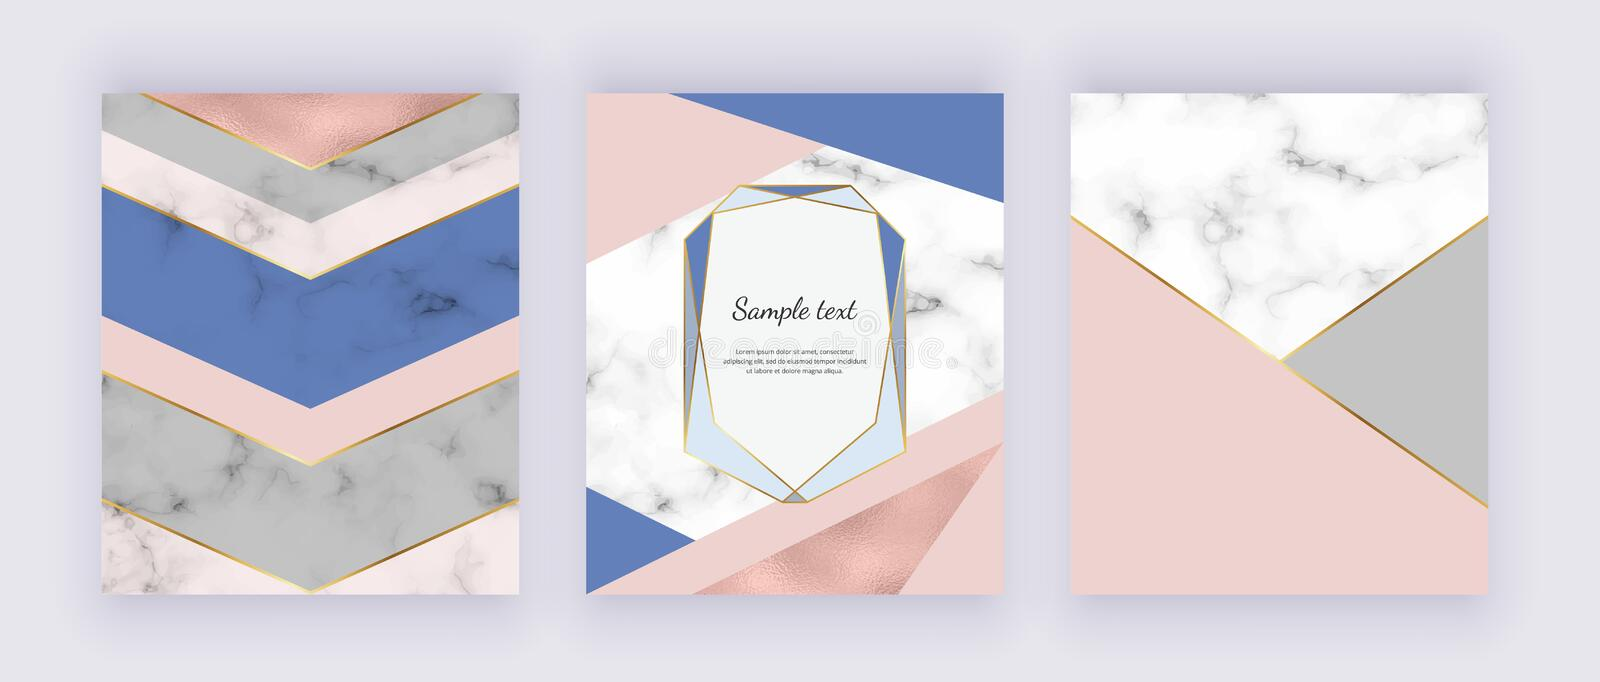 Geometric marble, rose gold foil texture with pink and blue triangular shapes. Modern covers design backgrounds. Templates for wed stock illustration